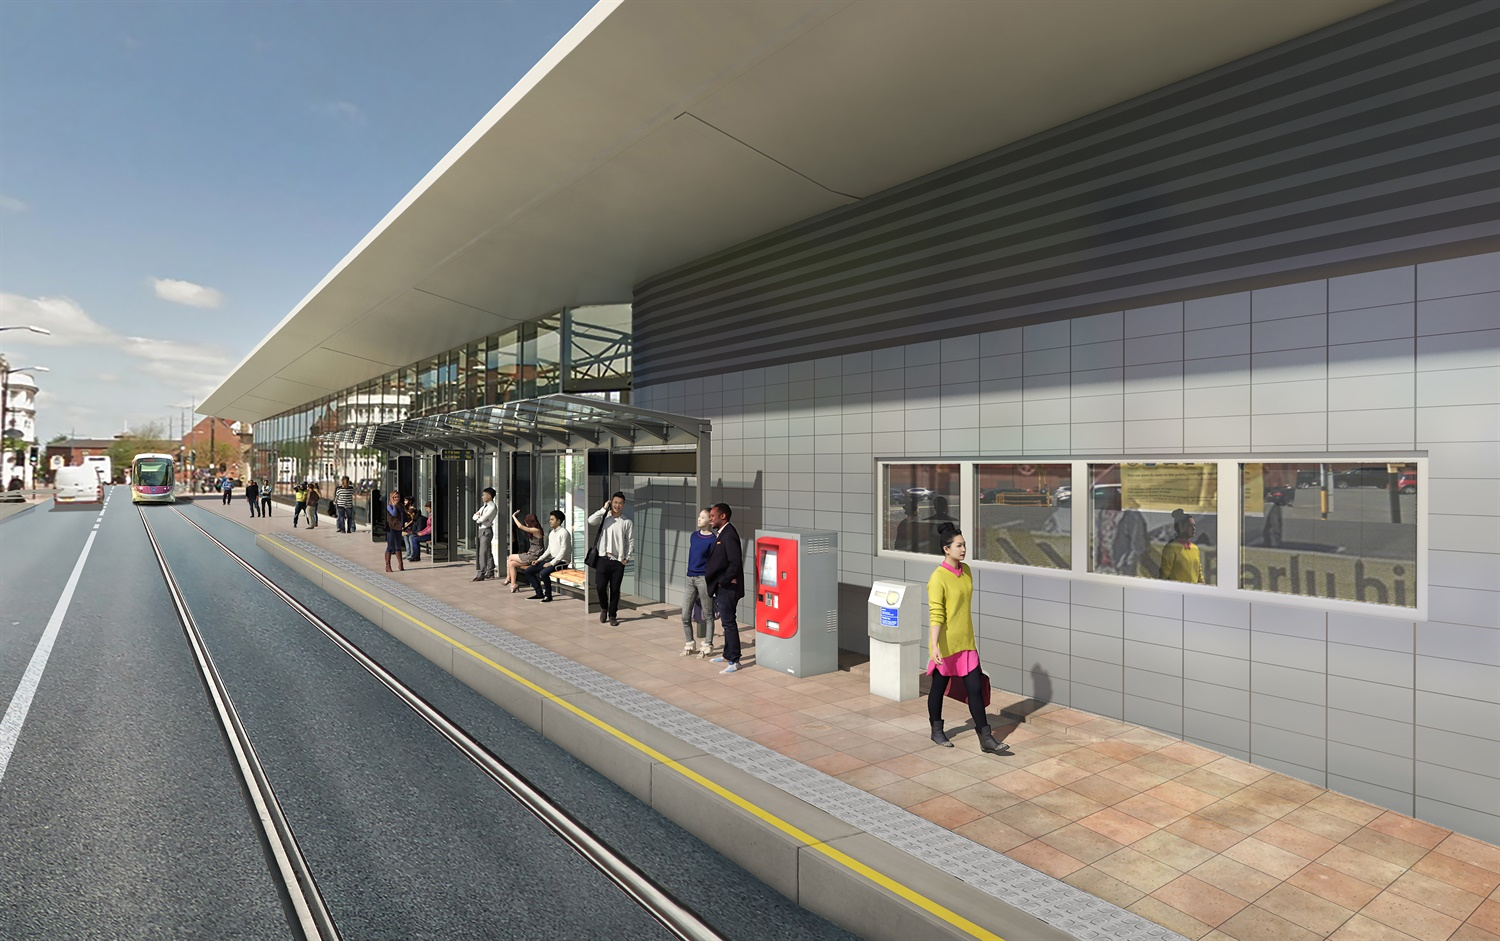 Next phase of £150m Wolverhampton tram extension to move forward in March